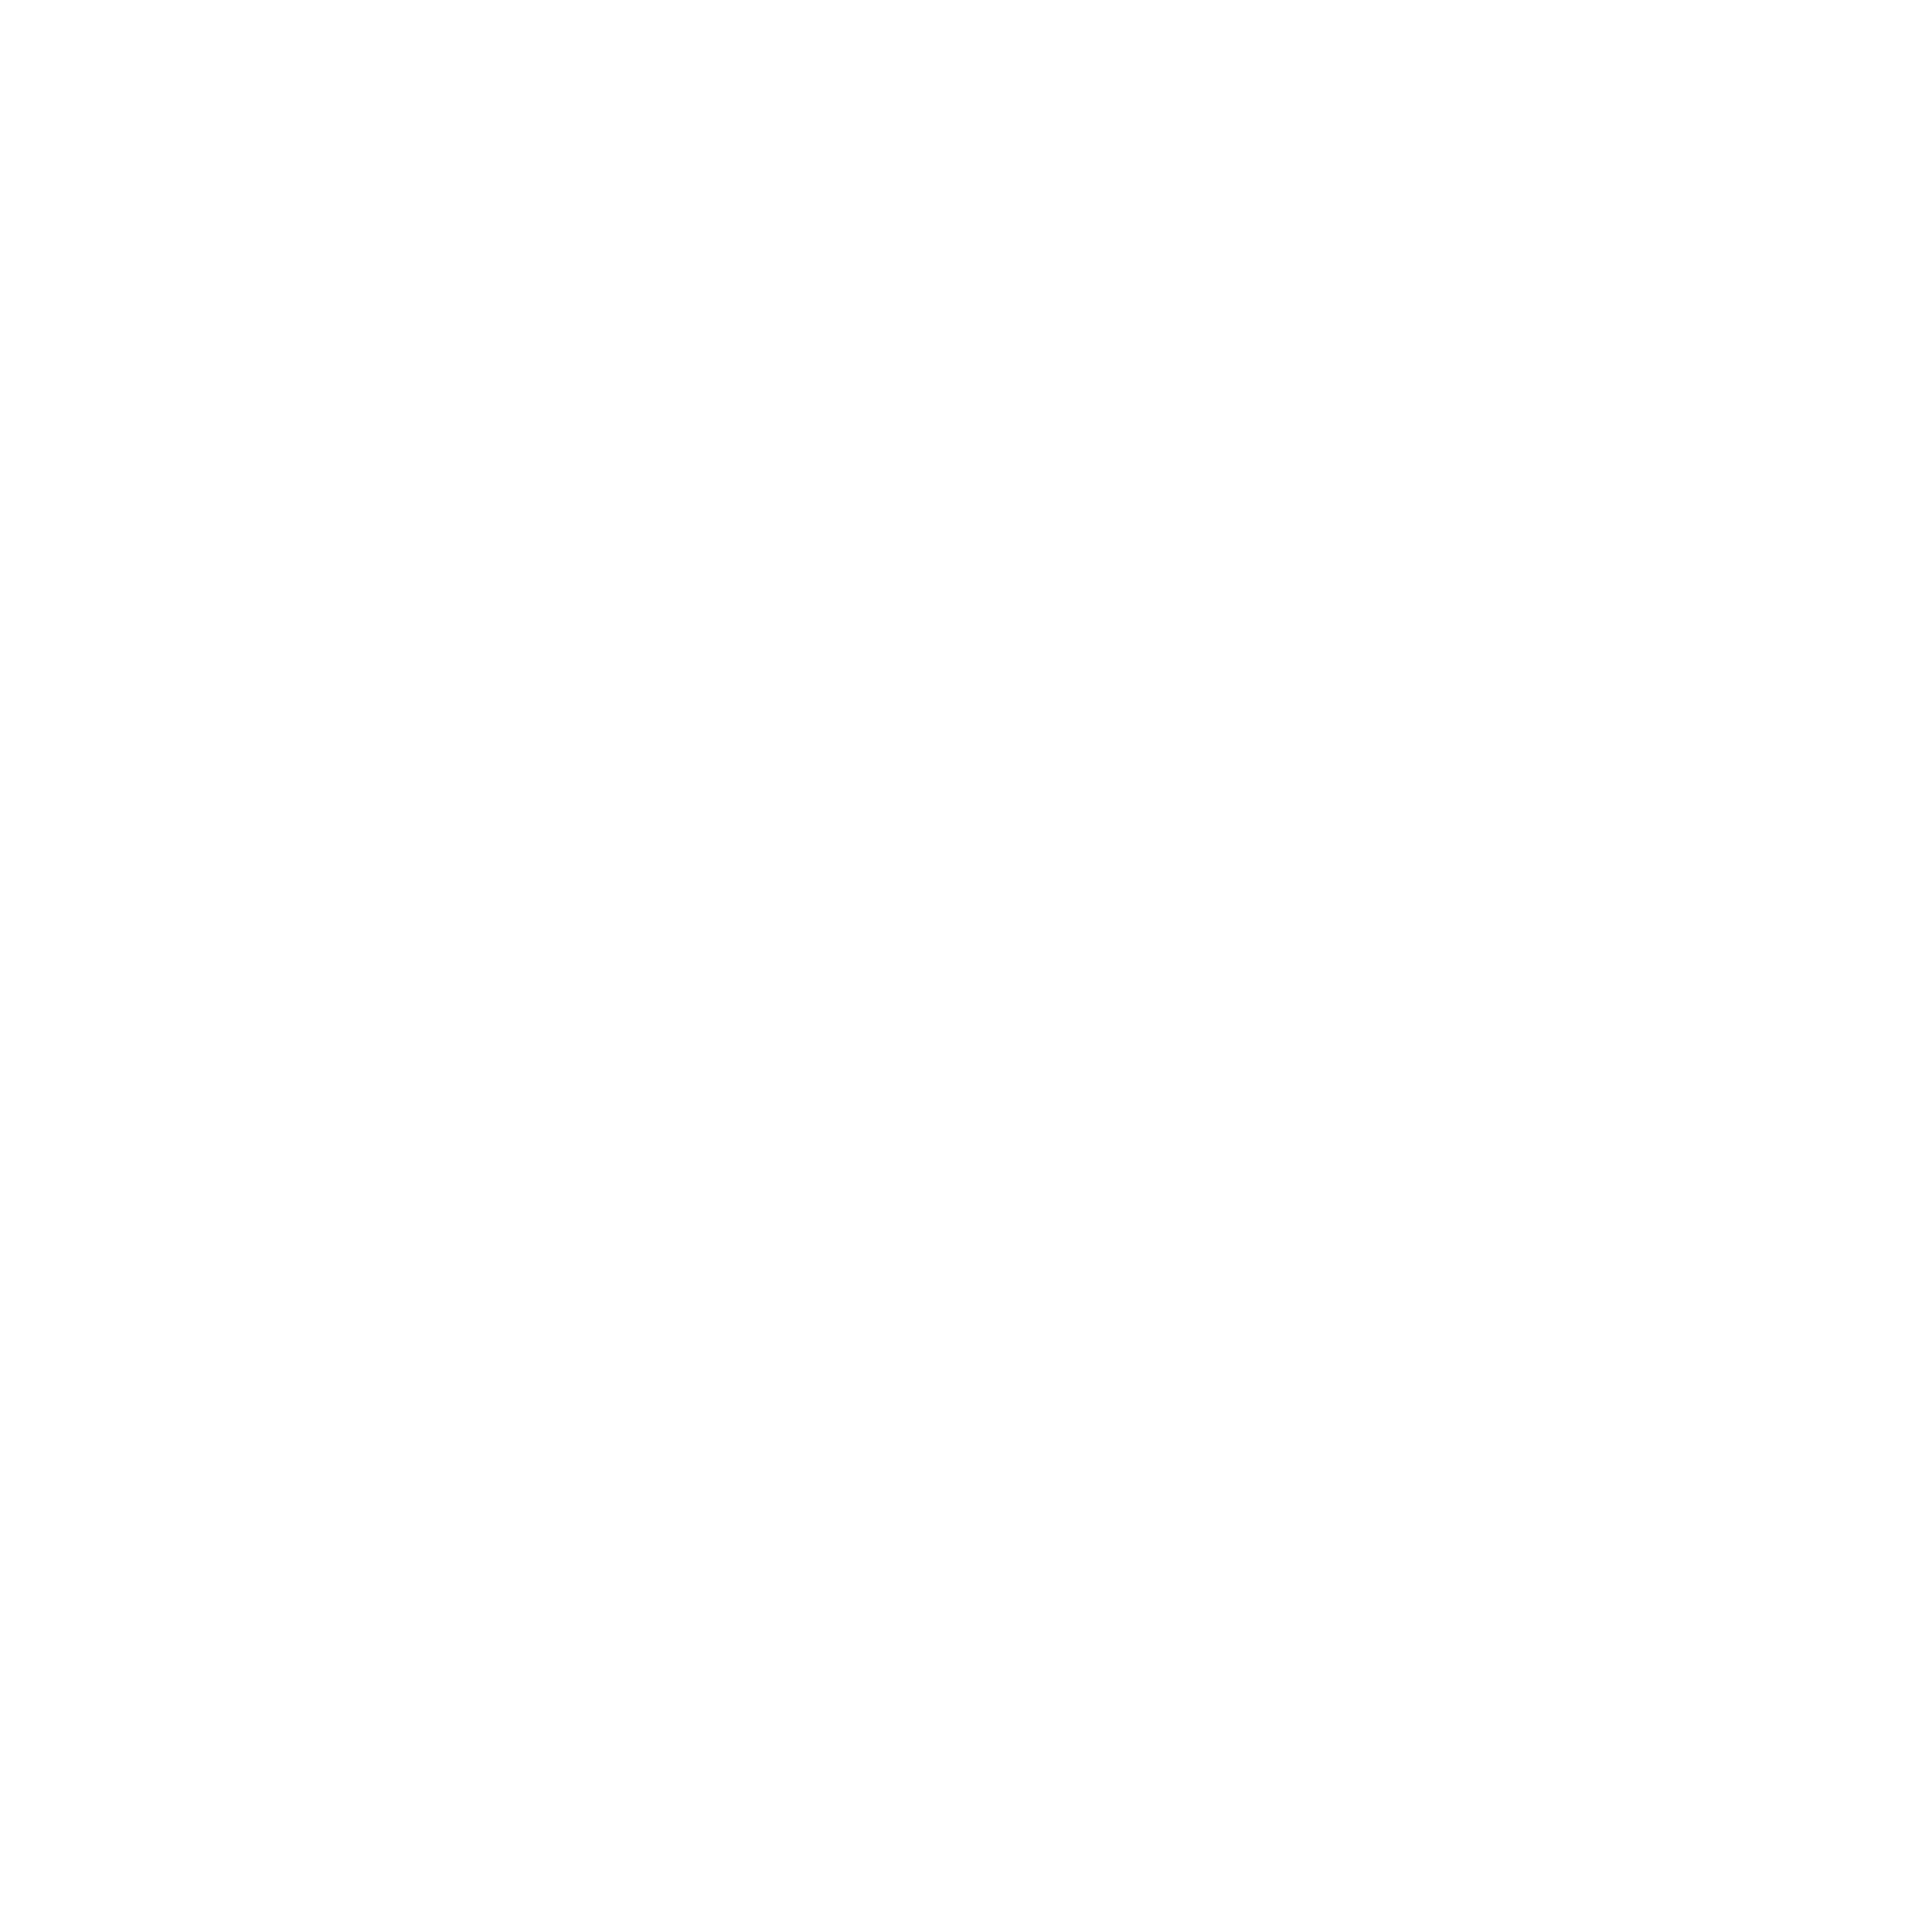 San Antonio Premiere - San Antonio, TX.July 30-August 4 Official Selection. Special guests in attendance. Tickets and passes available here.